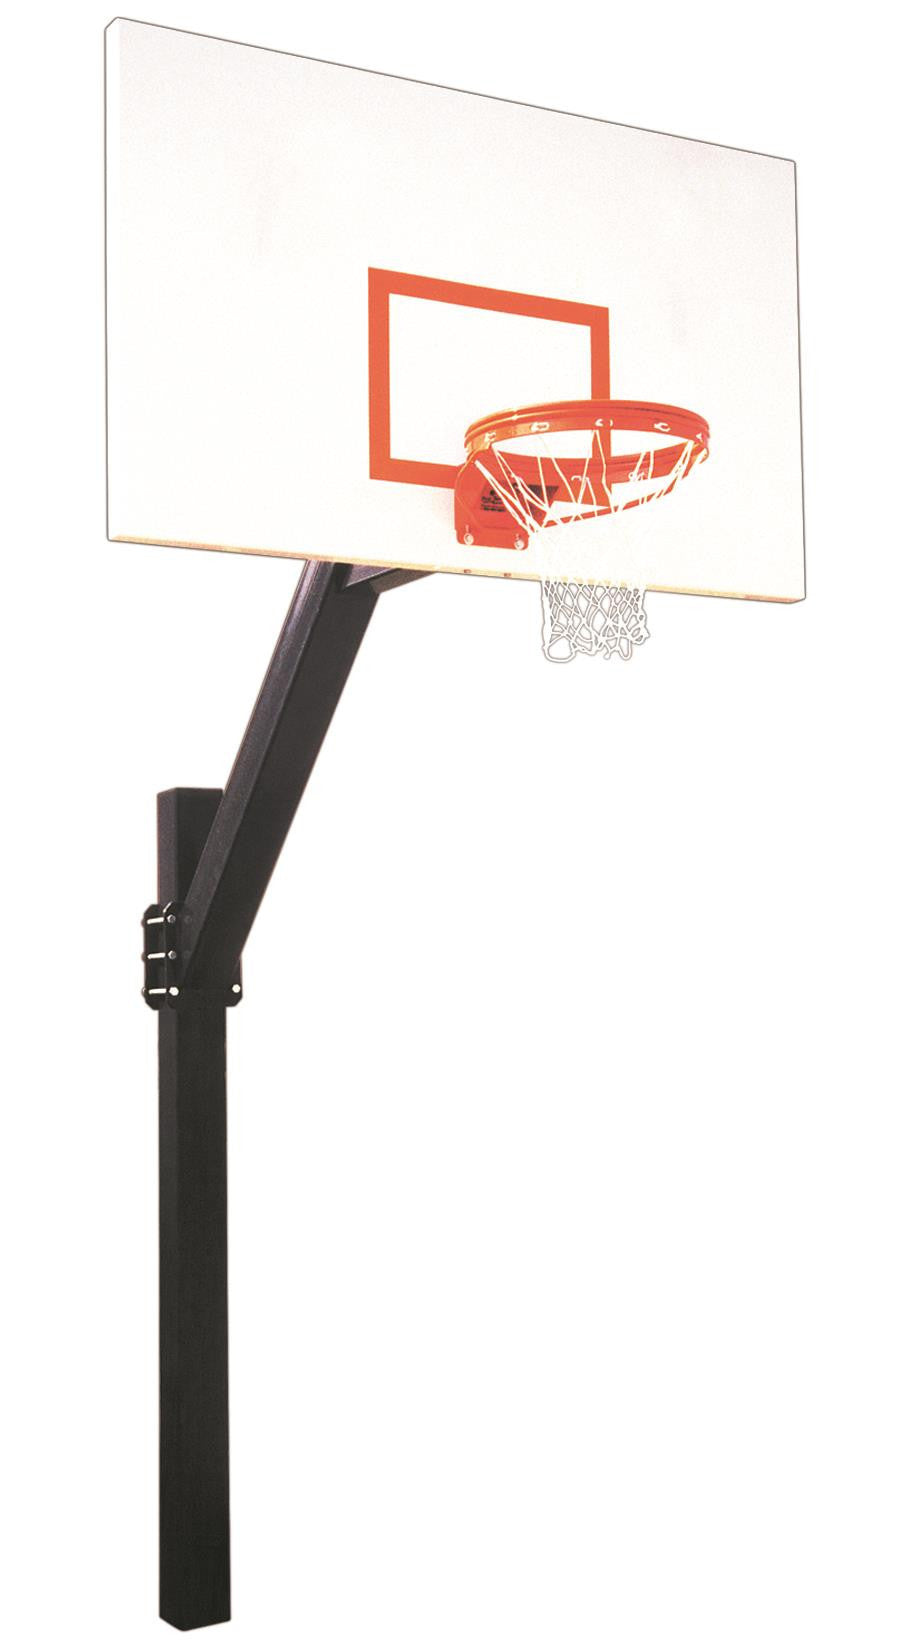 First Team Legend Excel In Ground Fixed Height Outdoor Basketball Hoop 72 inch Steel